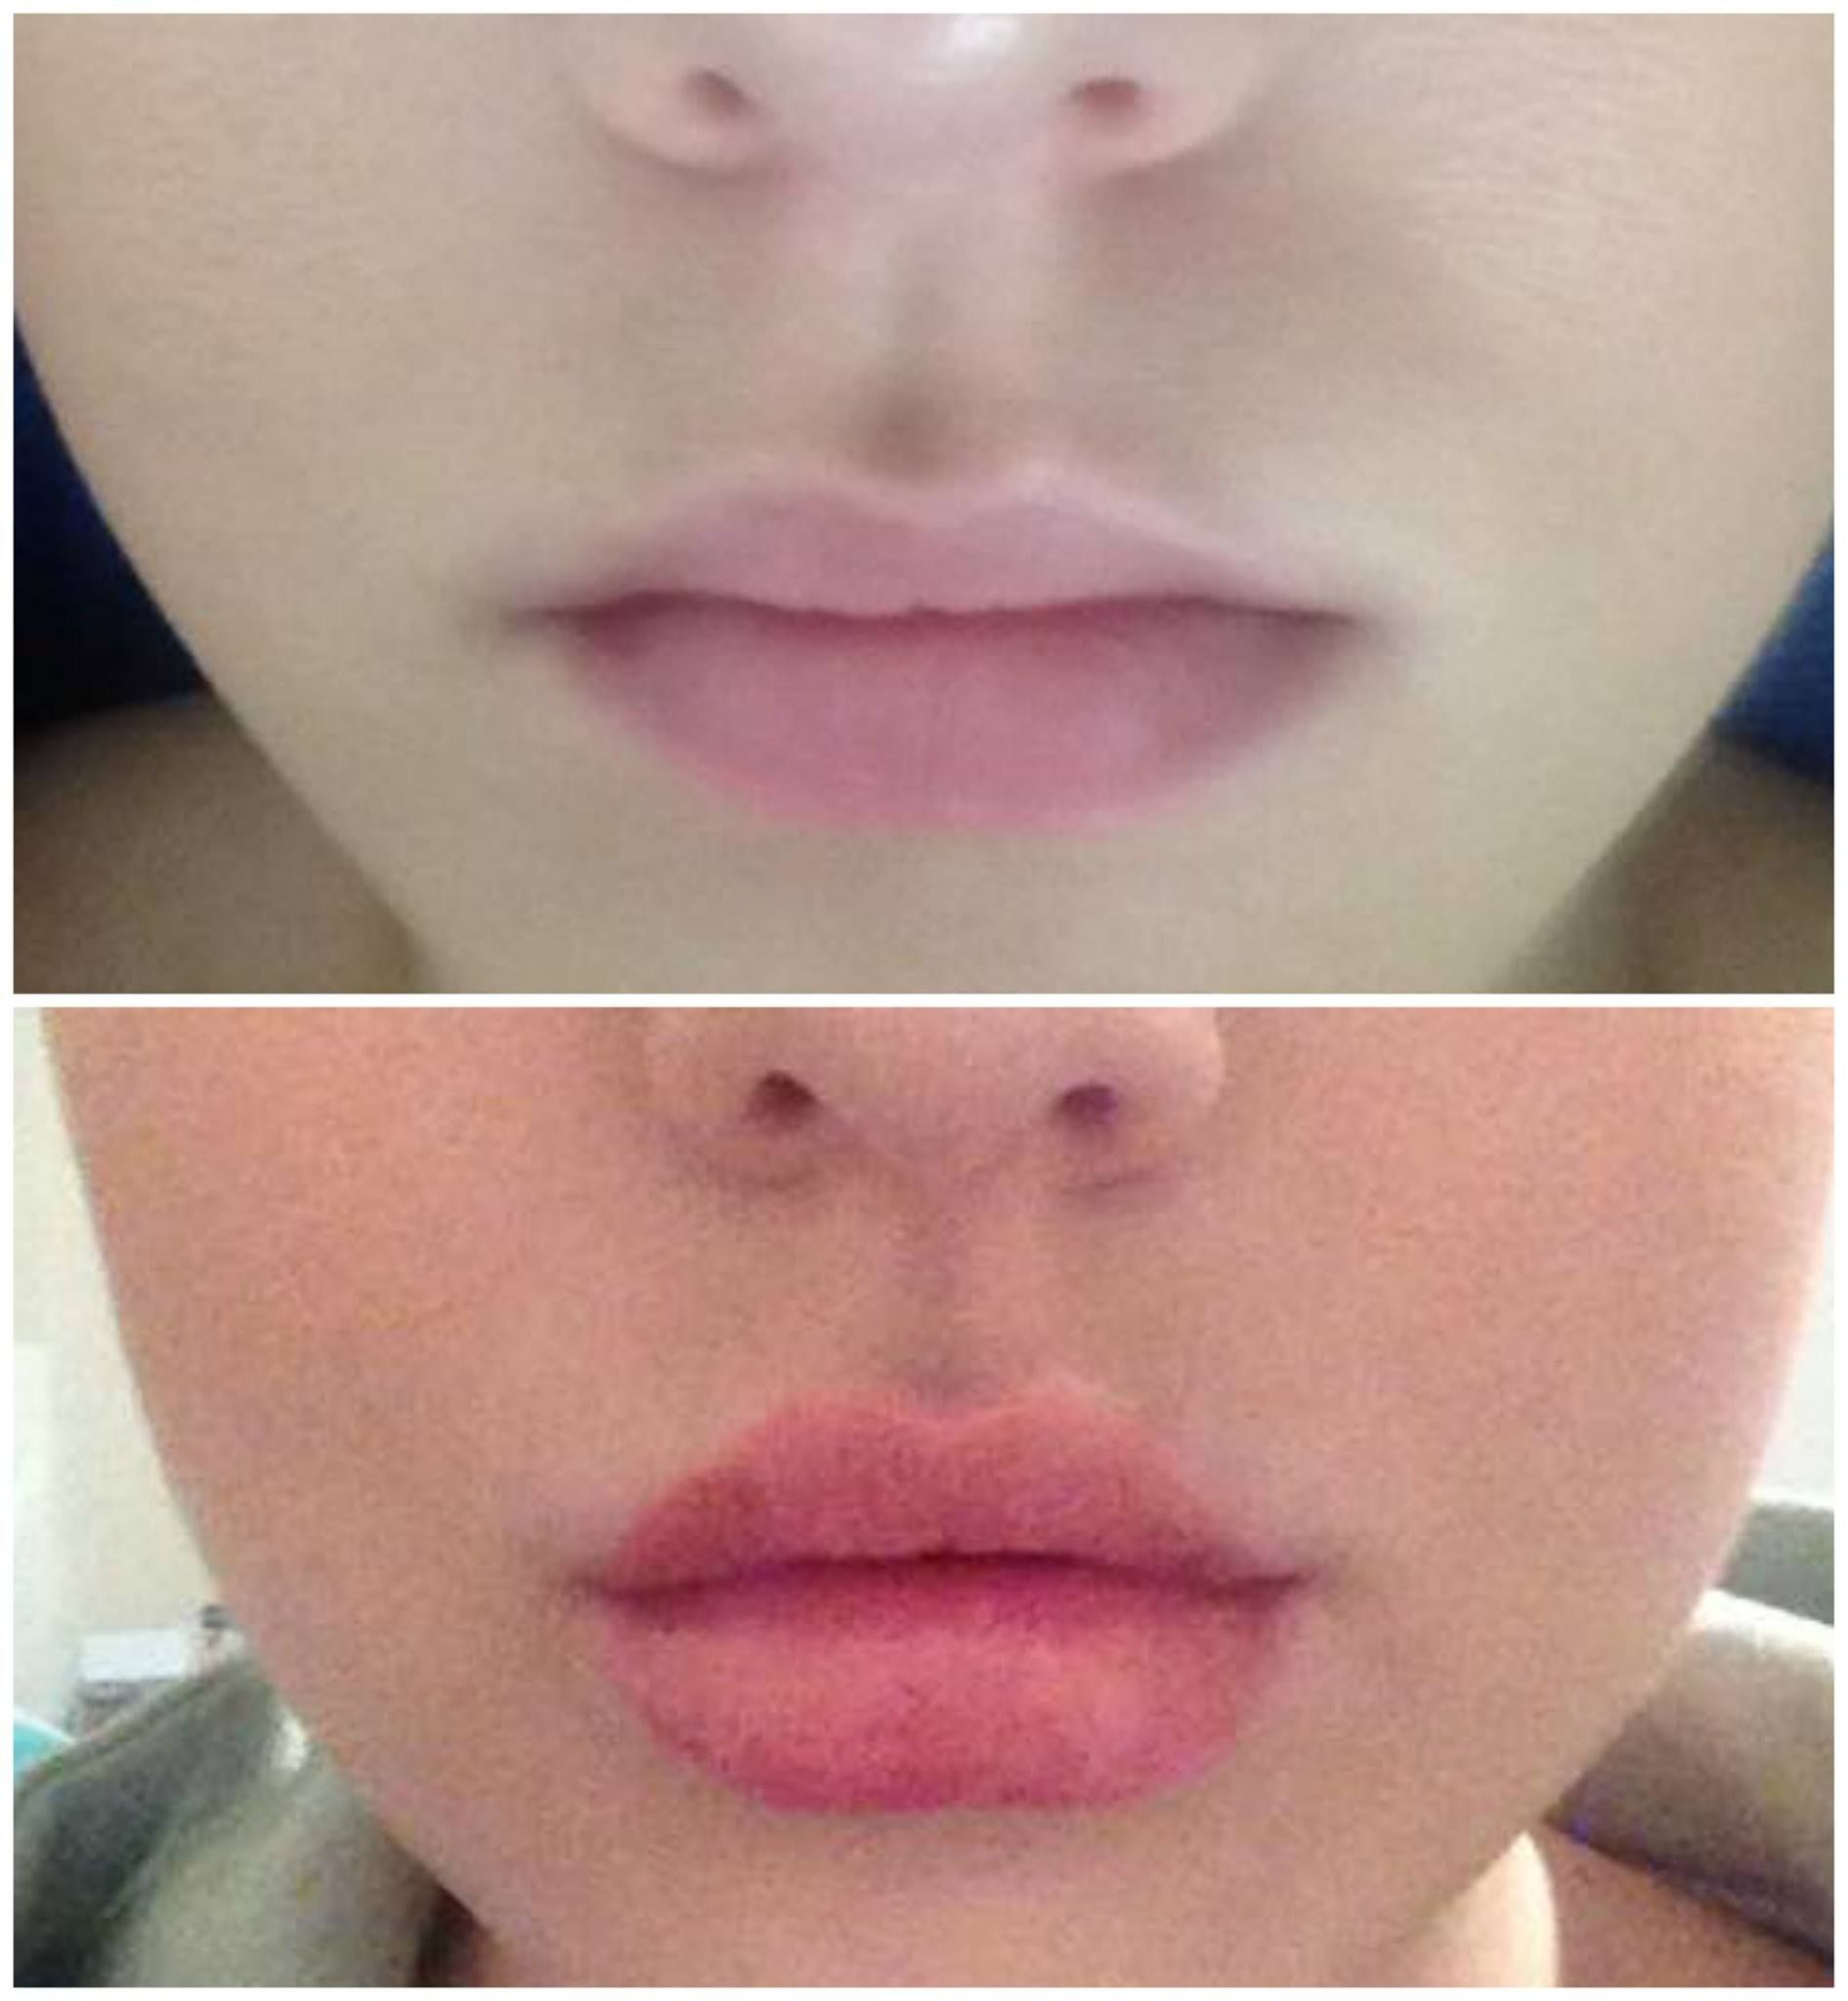 Shell, is looking amazing after receiving lip injections